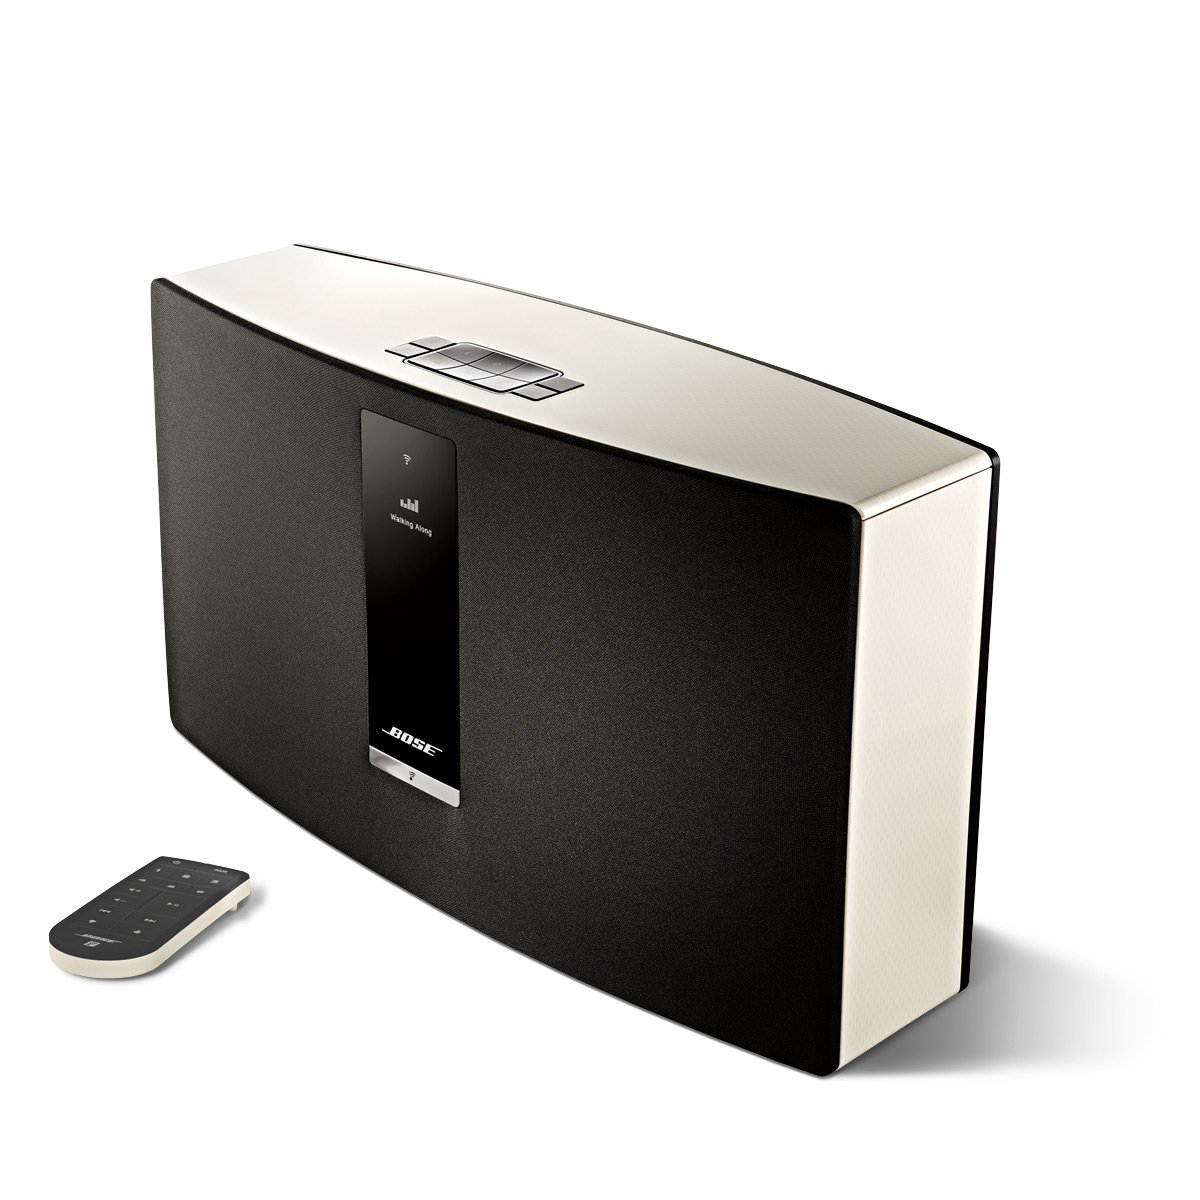 bose soundtouch mit code kurze zeit 100 euro sparen. Black Bedroom Furniture Sets. Home Design Ideas